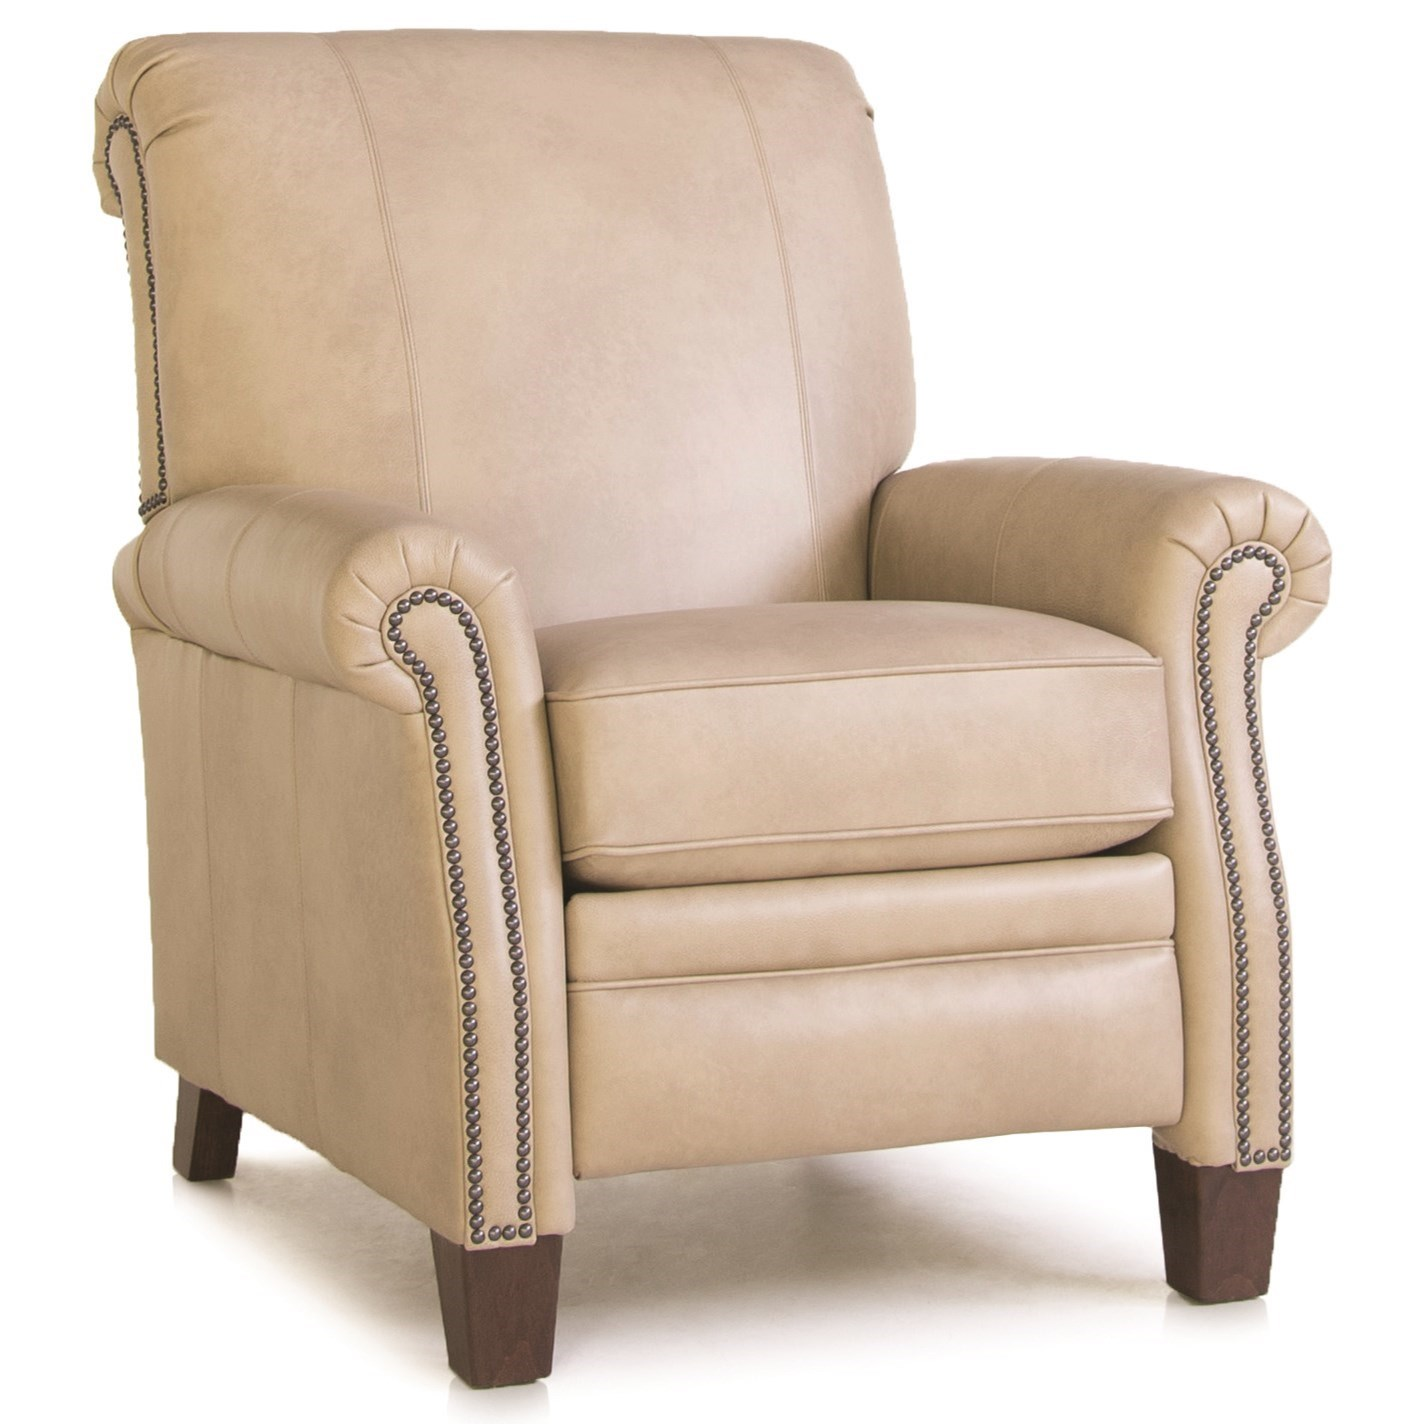 704 High Leg Pressback Recliner by Smith Brothers at Mueller Furniture